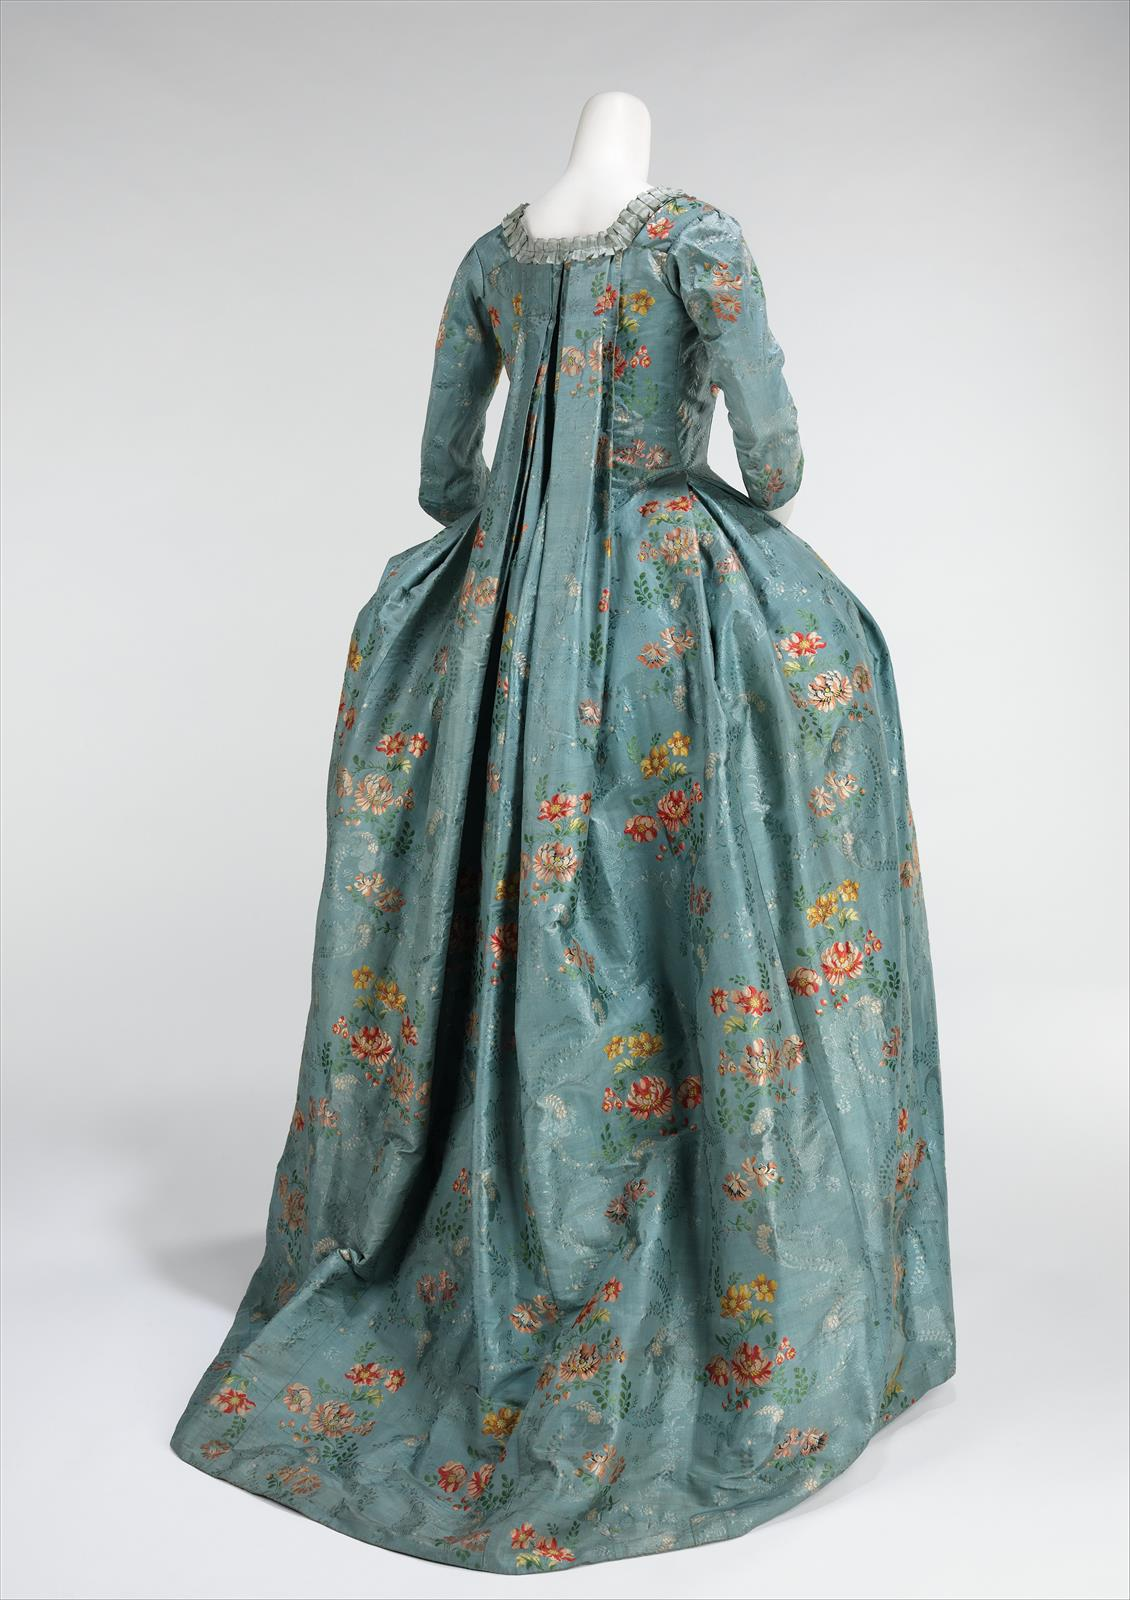 1765. Robe à la Française. French. Silk, cotton. metmuseum